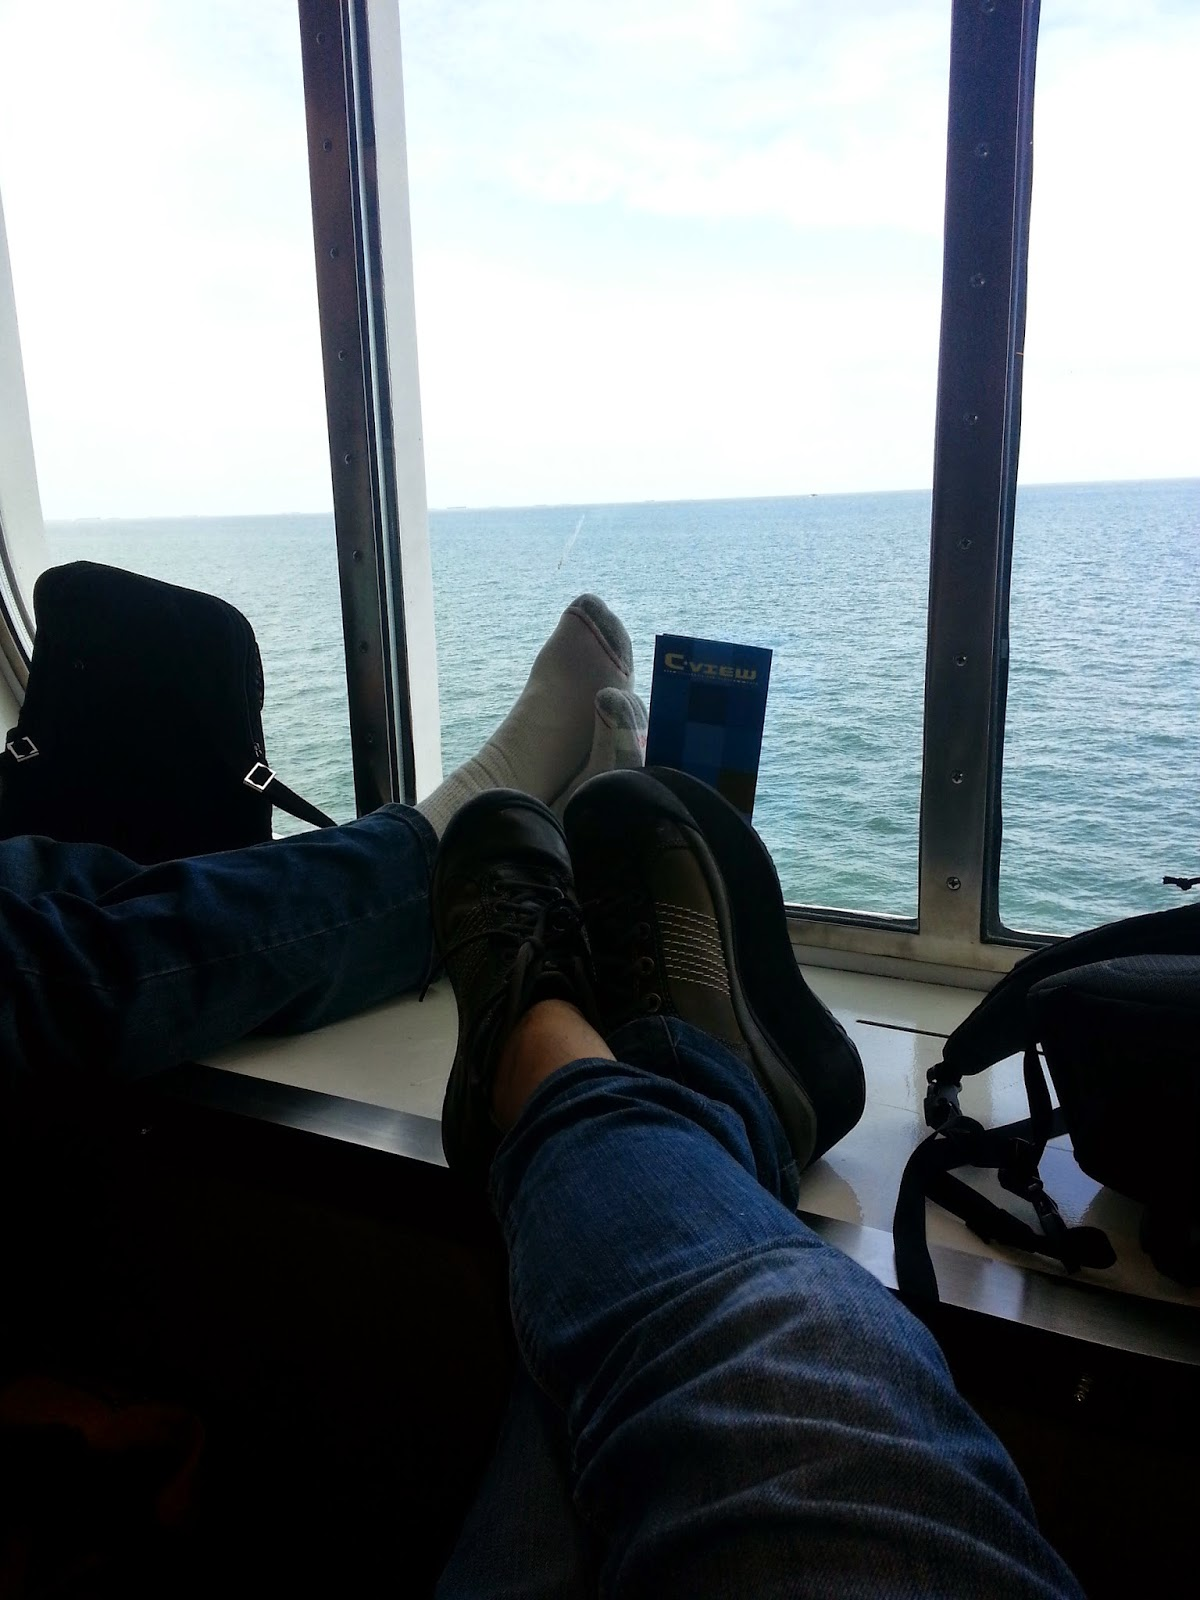 Riding the ferry from Hoek van Holland